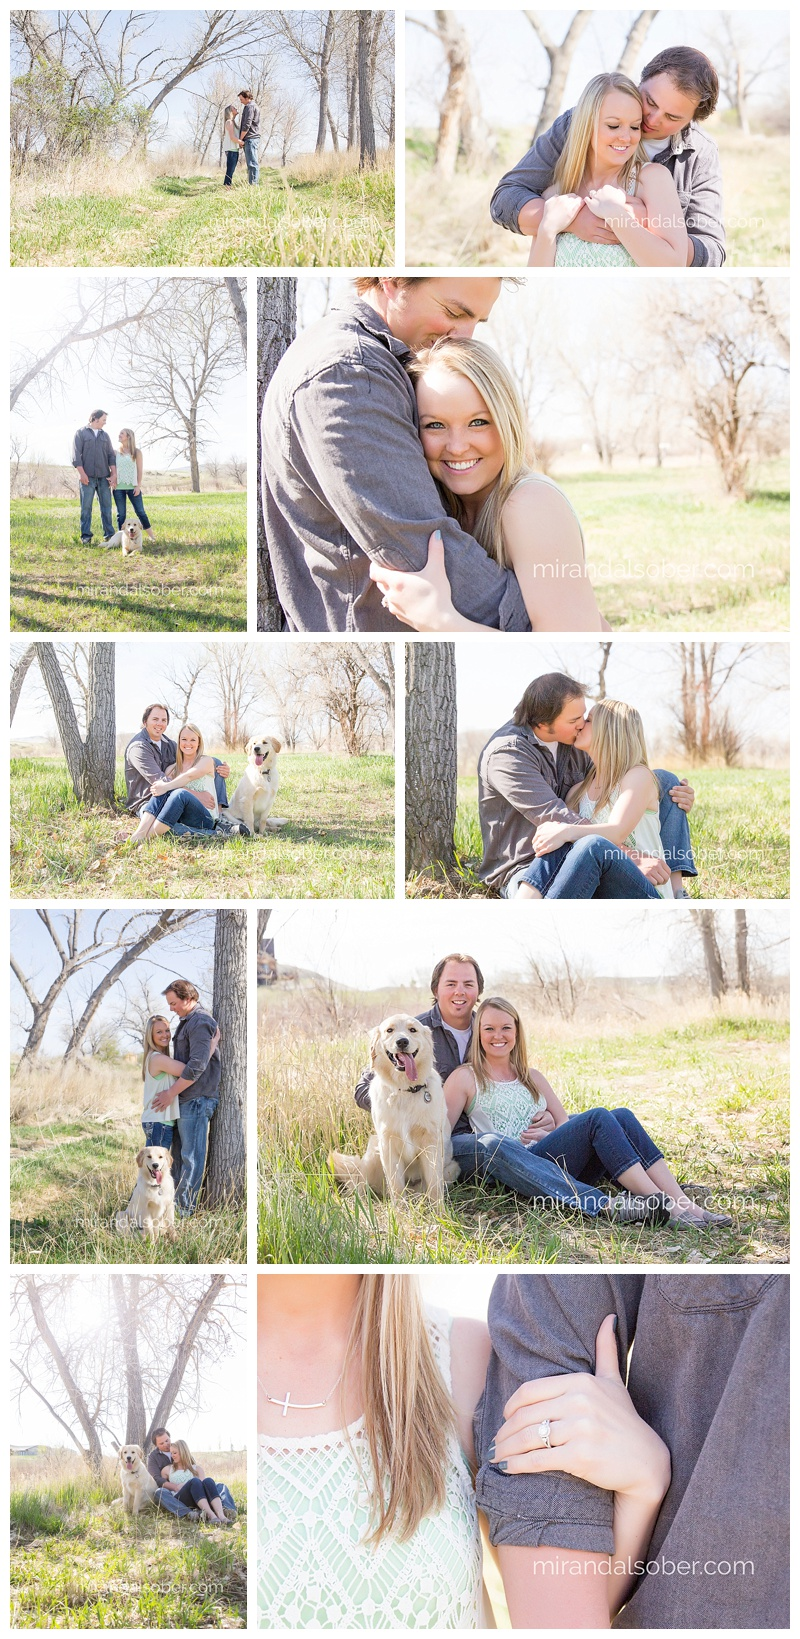 engagement photography, Miranda L. Sober Photography, Fort Collins photographer